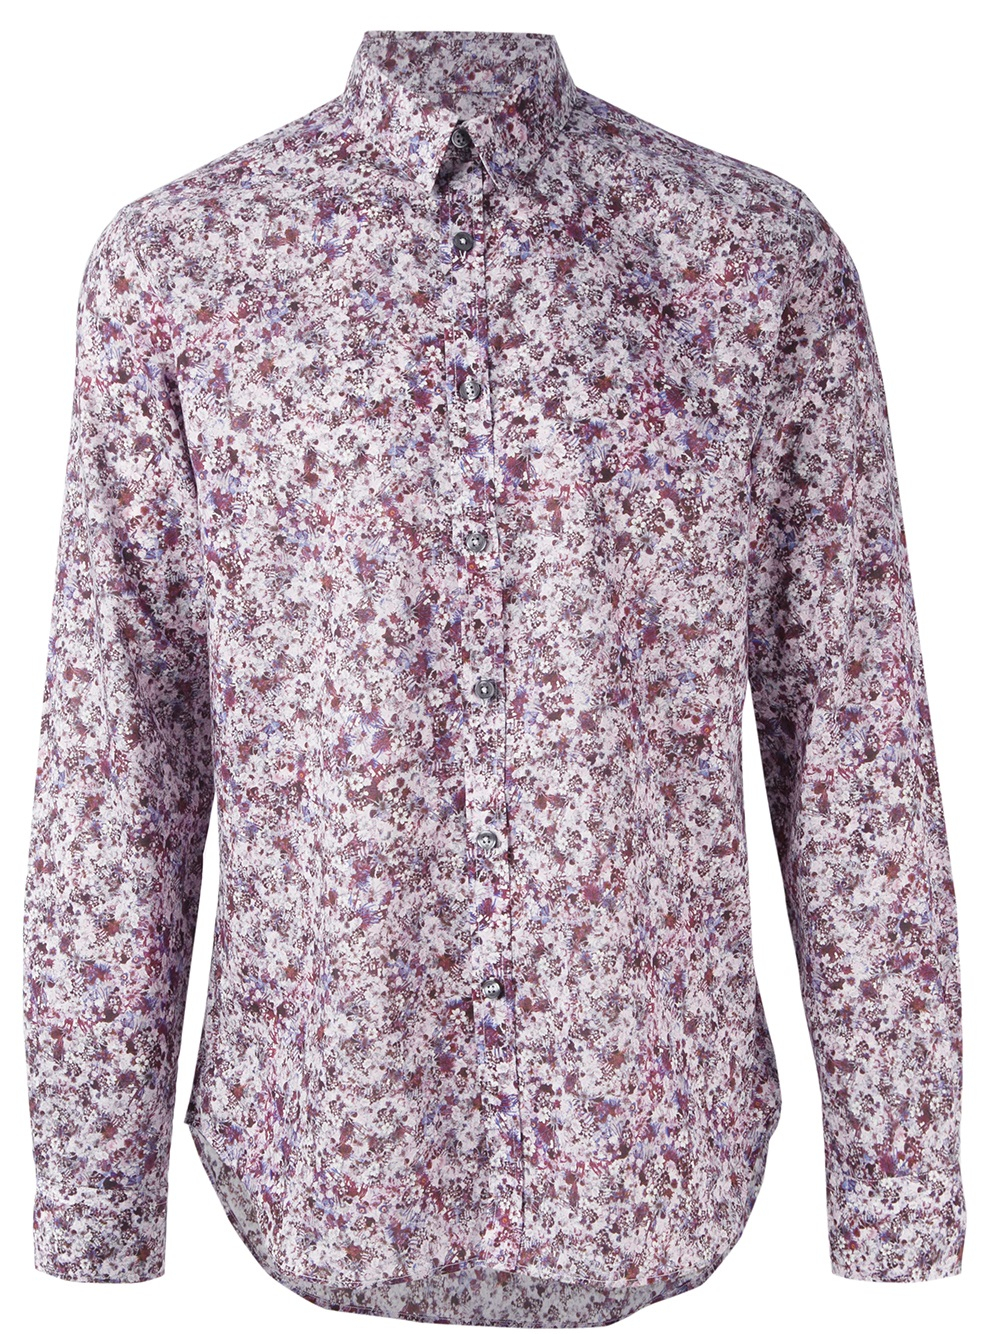 Paul smith Floral Print Shirt in Purple for Men | Lyst